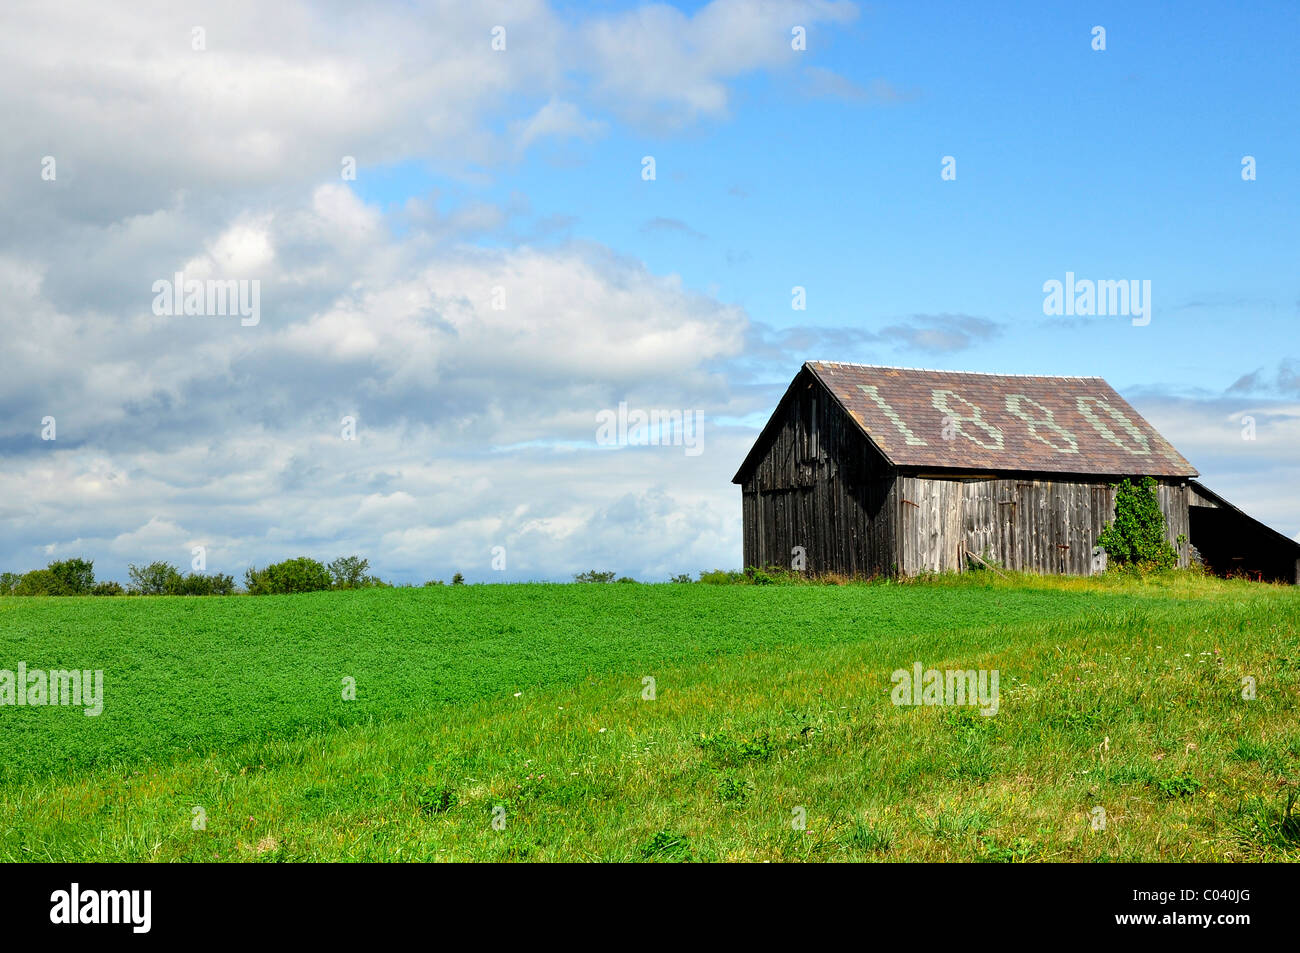 An old barn from 18th century, Vermont. - Stock Image